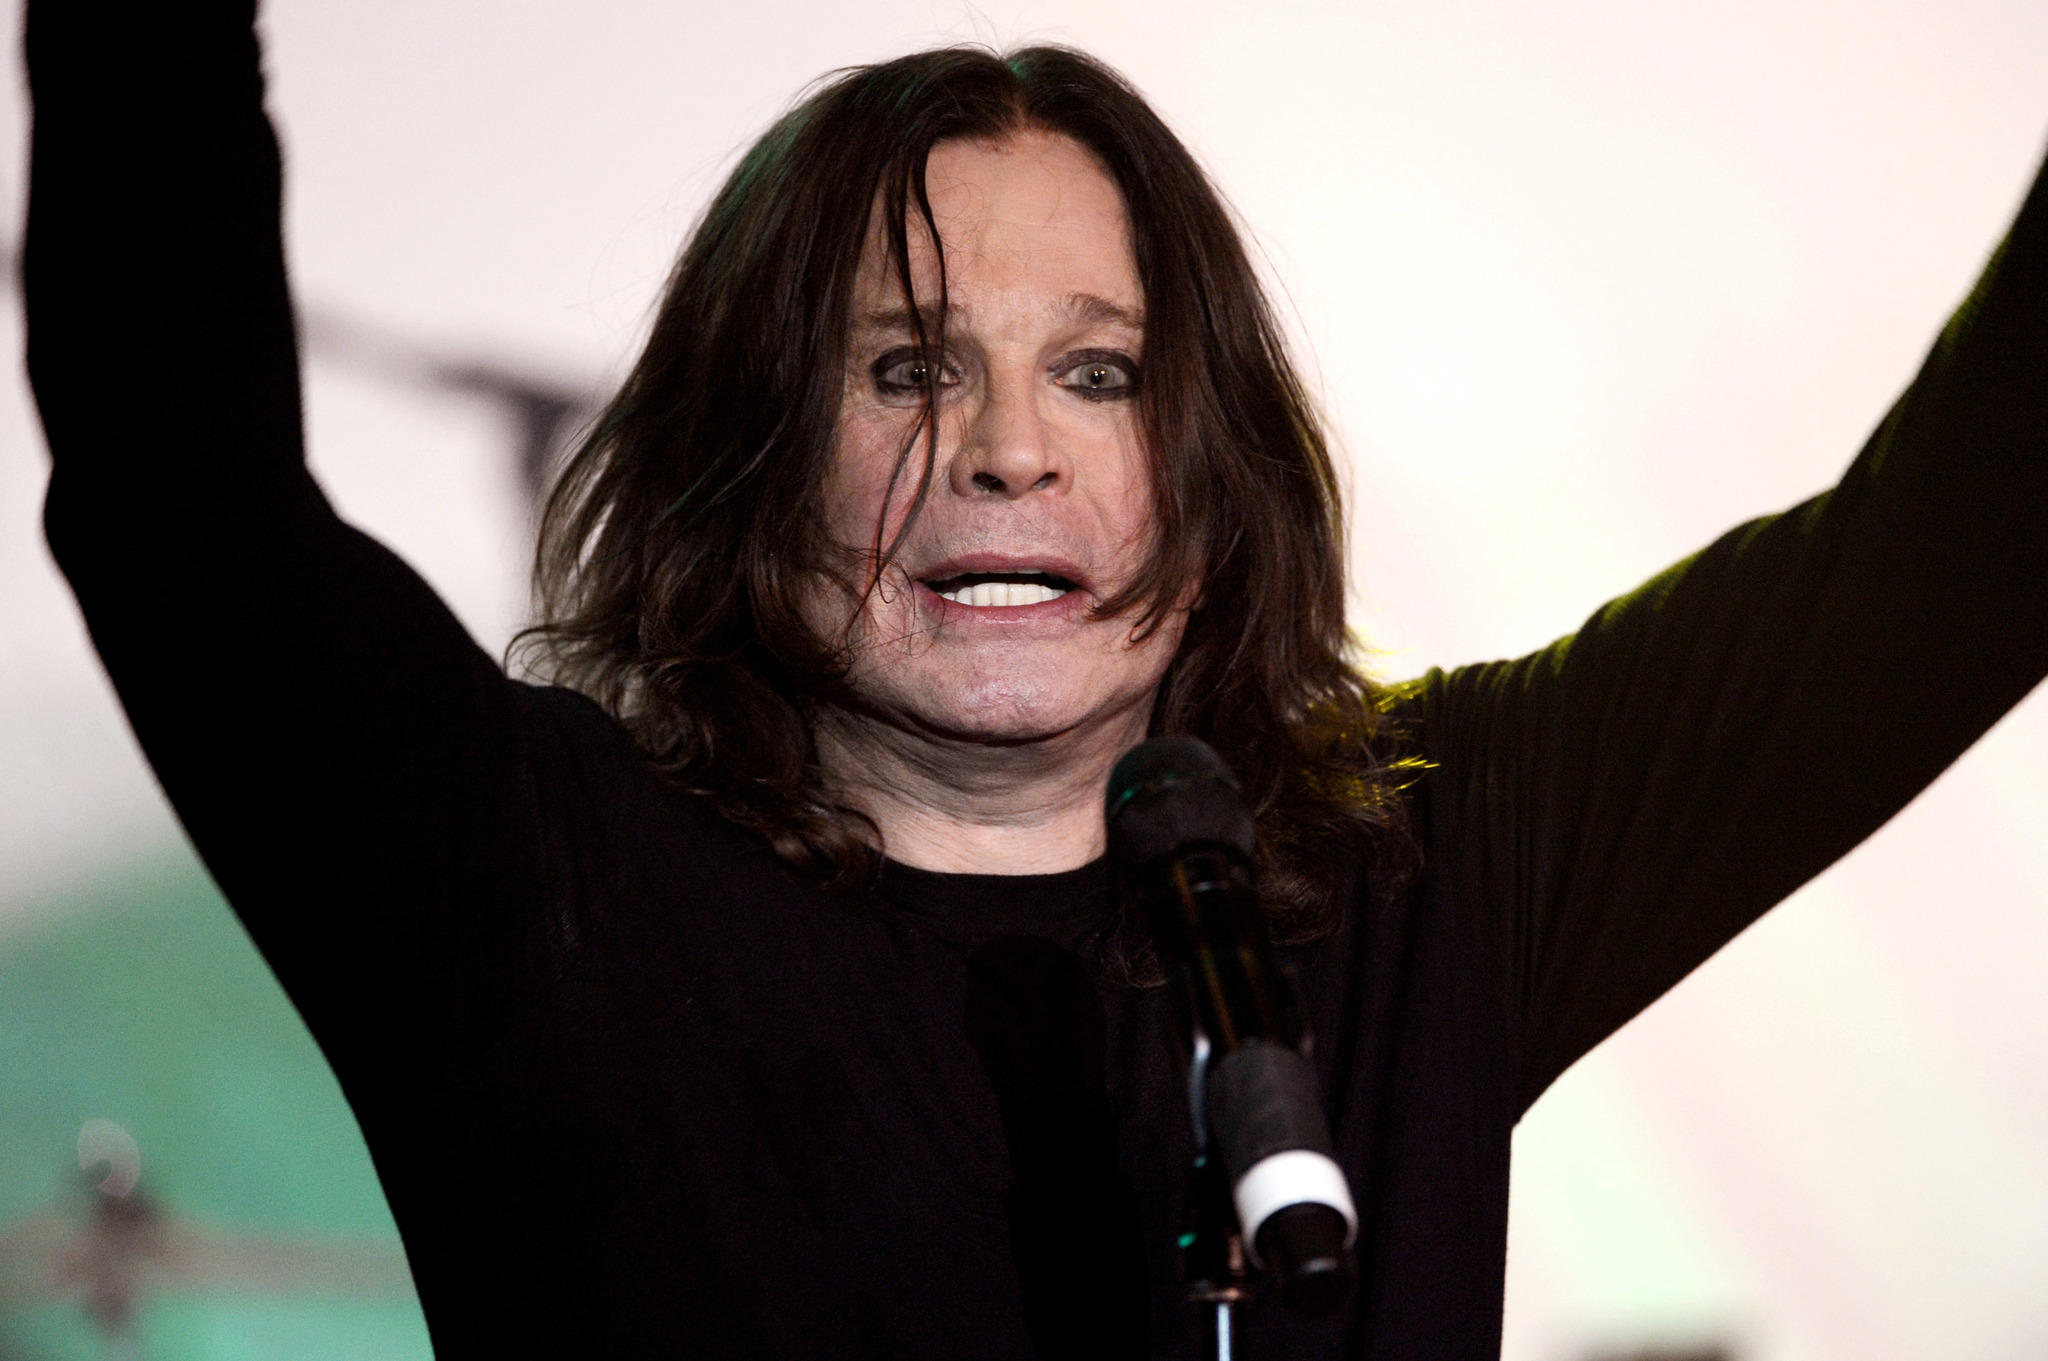 OZZY DAY Interview – His Buddy brought the Bat!